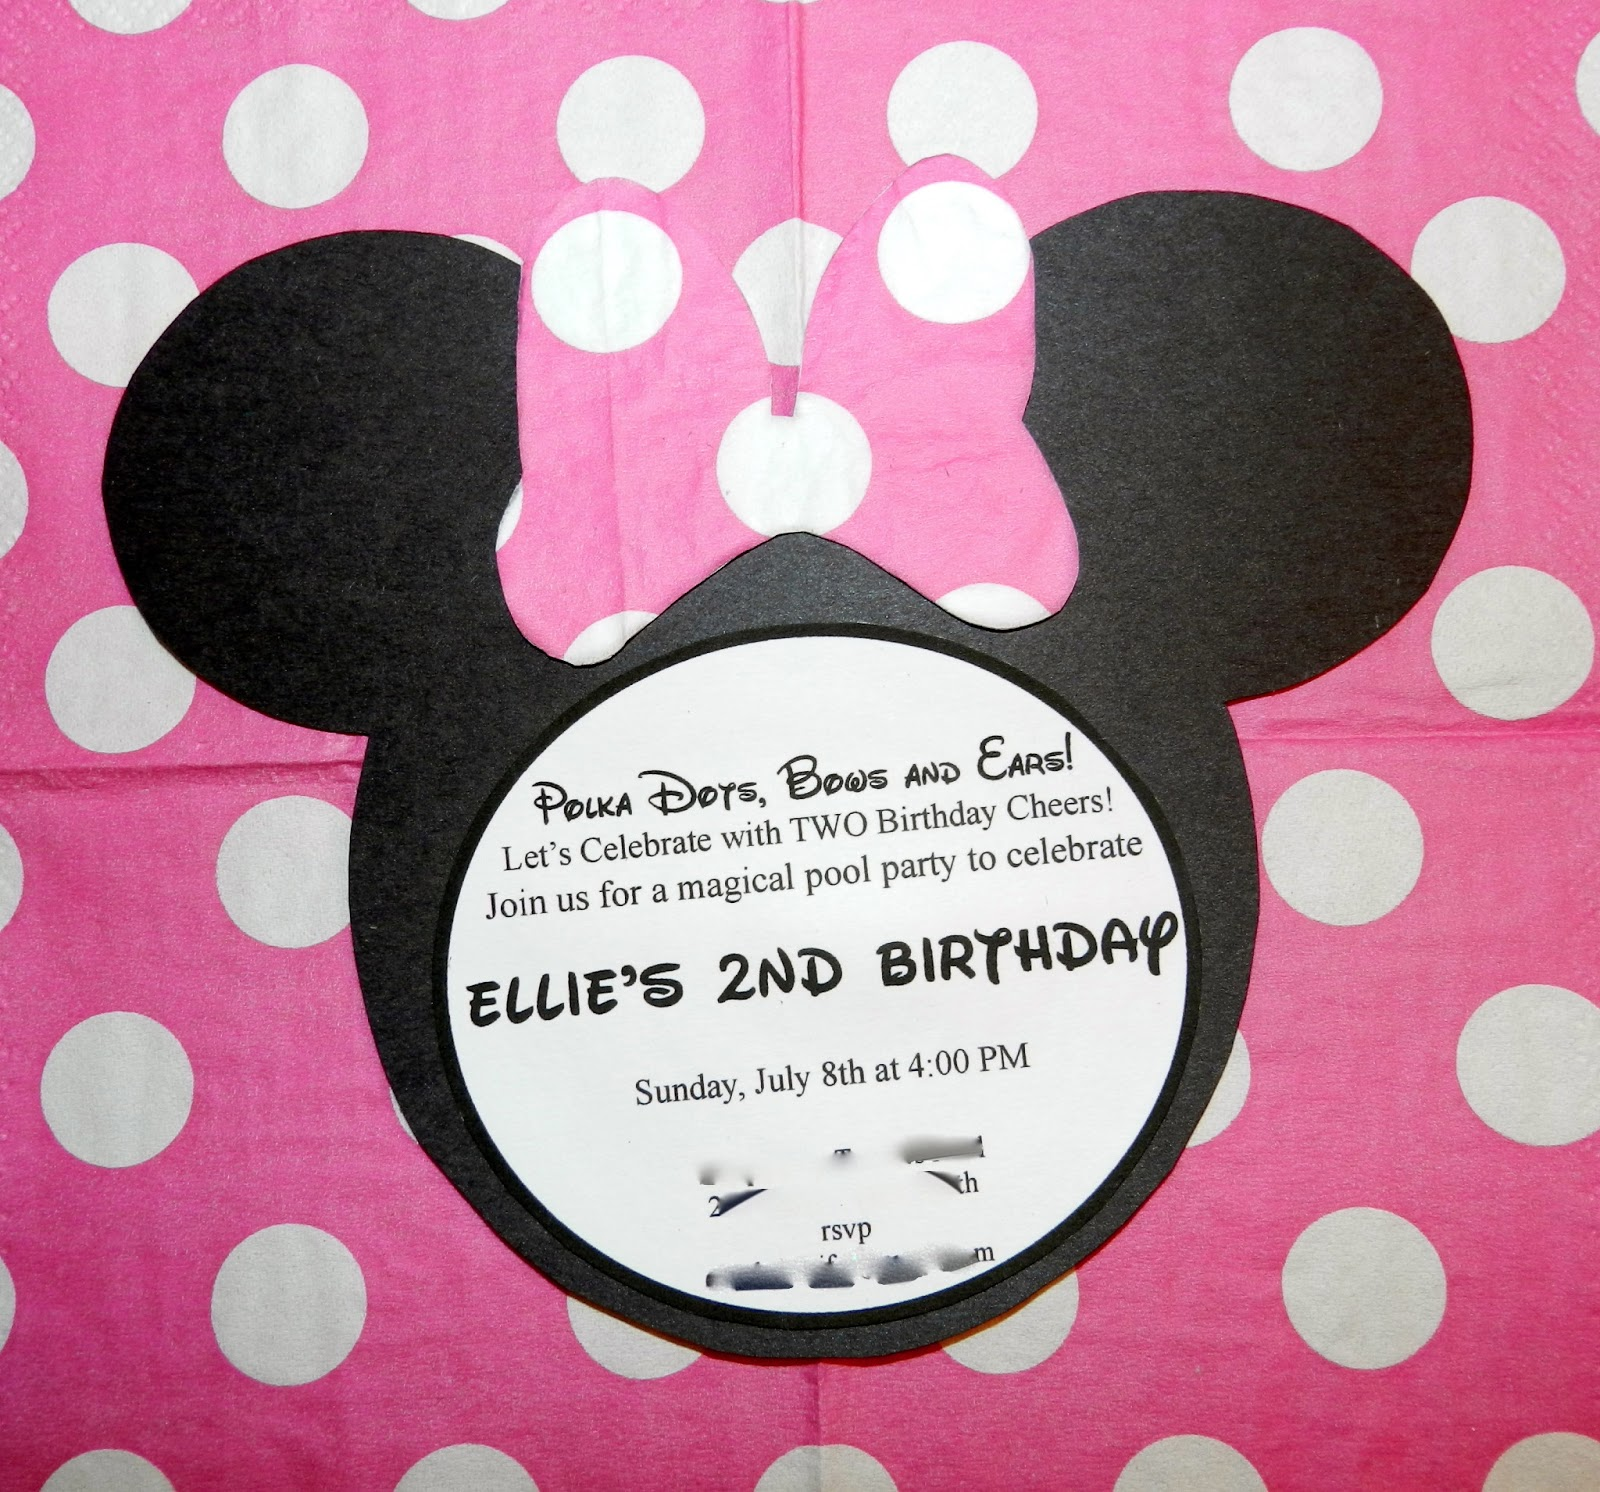 Minnie Mouse First Birthday Party Via Little Wish Parties: Addicted 2 Mickey: Minnie Mouse Themed Birthday Party